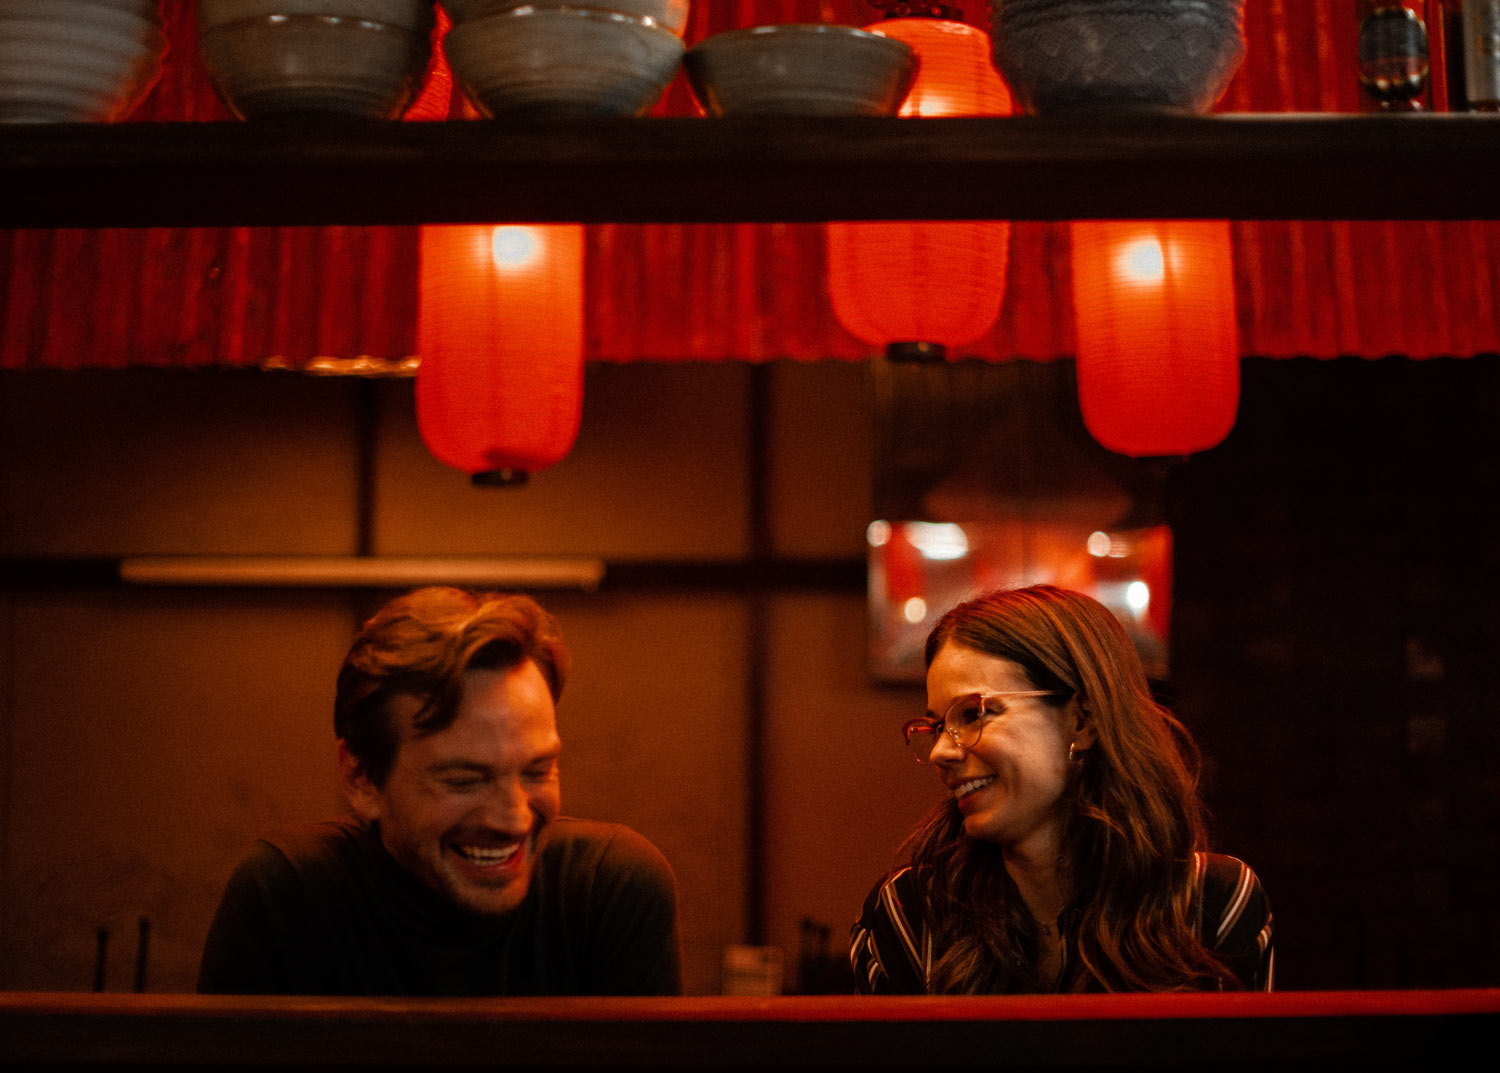 FOODIE LOVE - Laia Costa y Guillermo Pfening